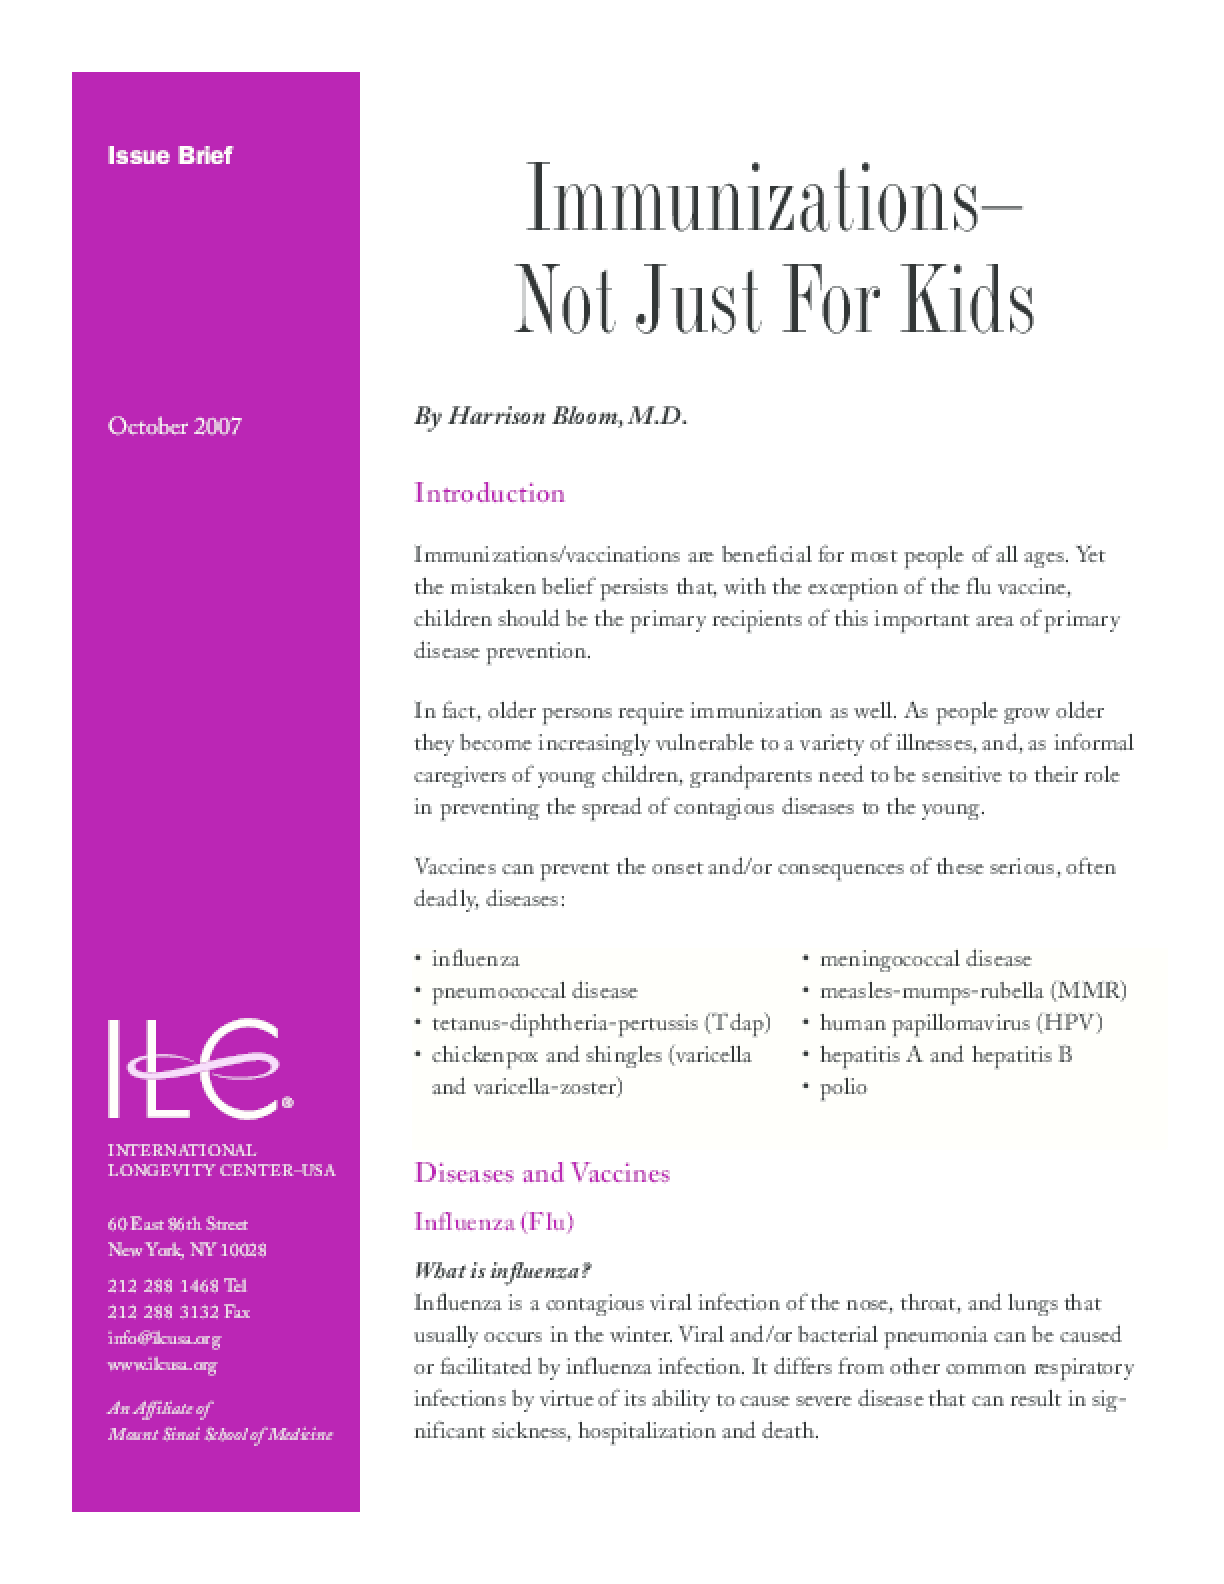 Immunizations - Not Just for Kids